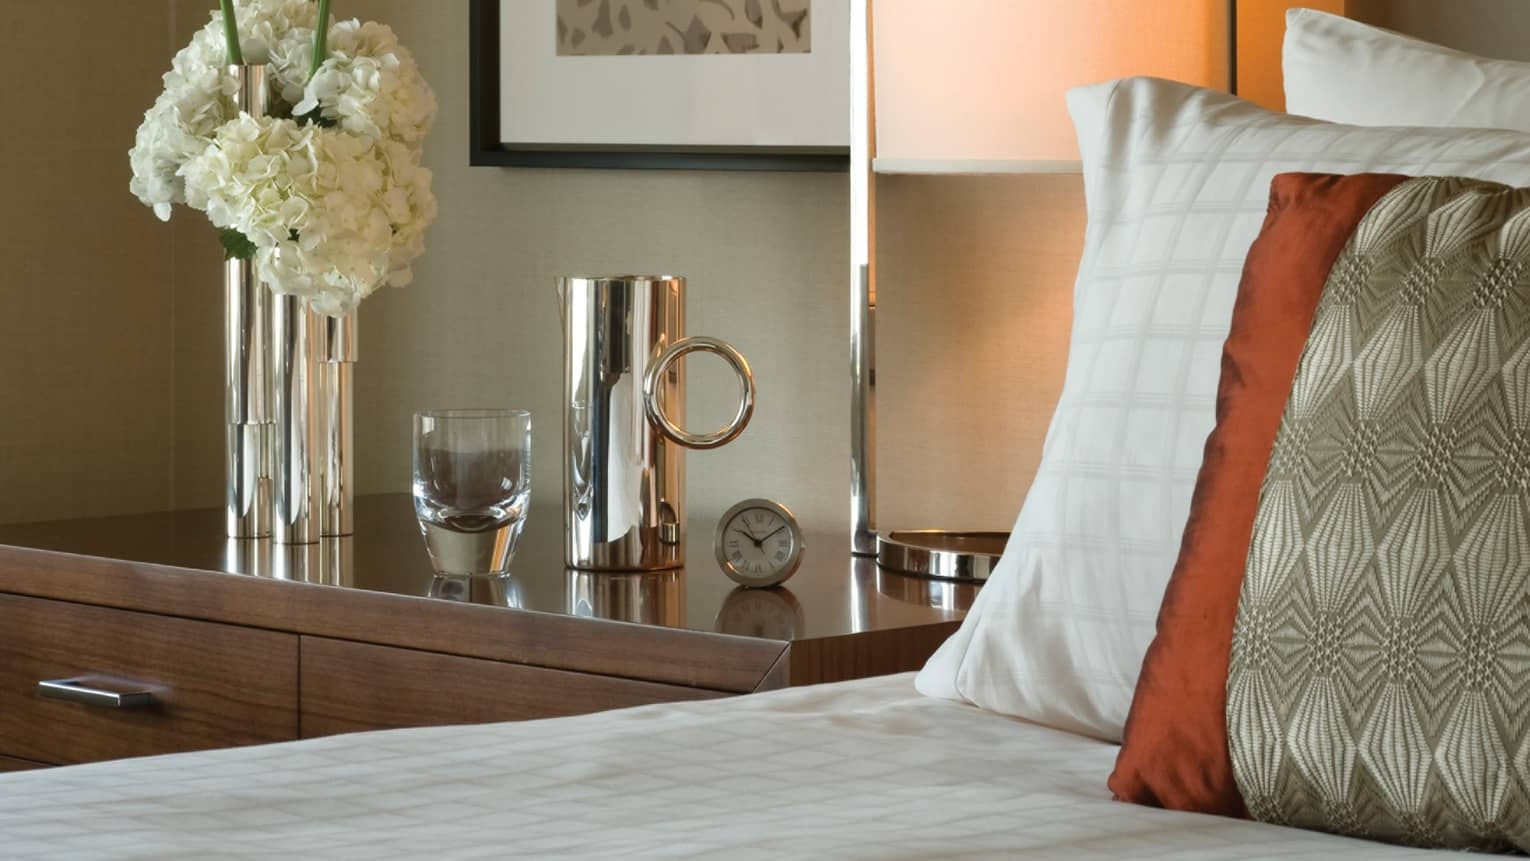 Premium Room close-up of bedside table with clock, silver vase with fresh white flowers, glass, canister, silk pillow on bed